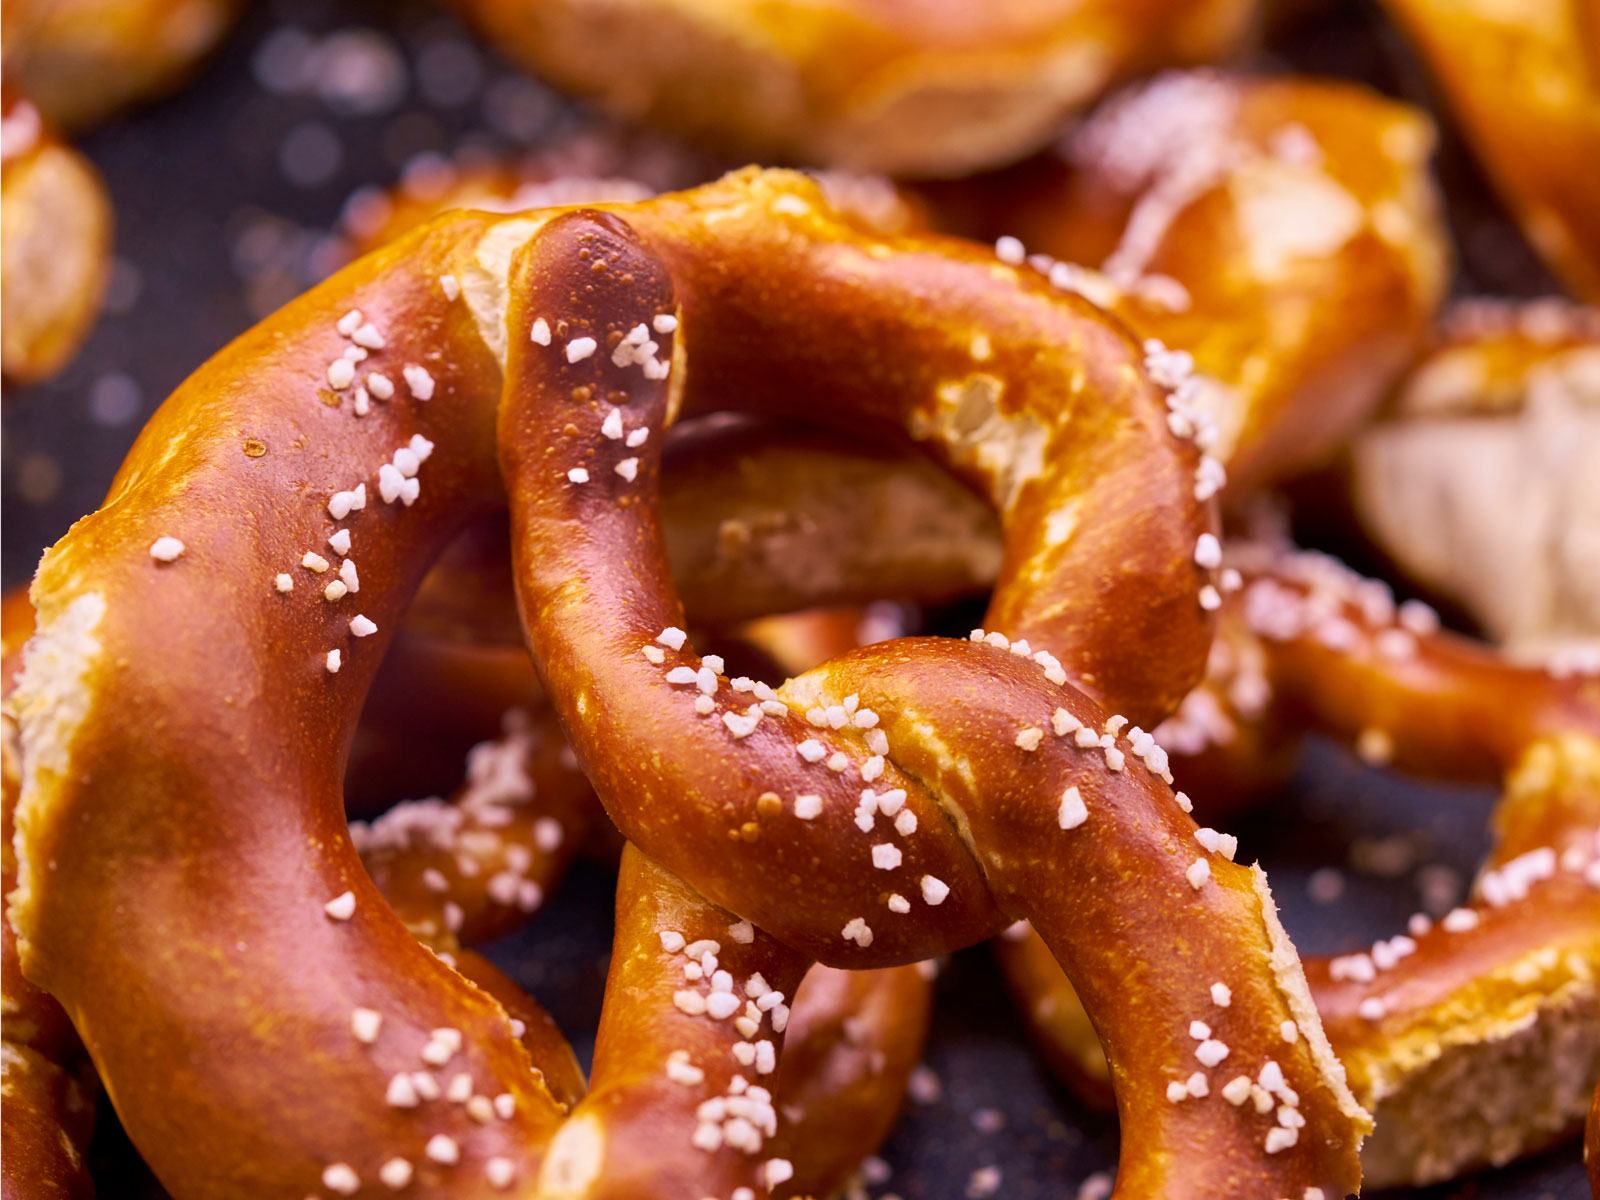 National Pretzel Day 2019: Where to Find Deals and Freebies on April 26